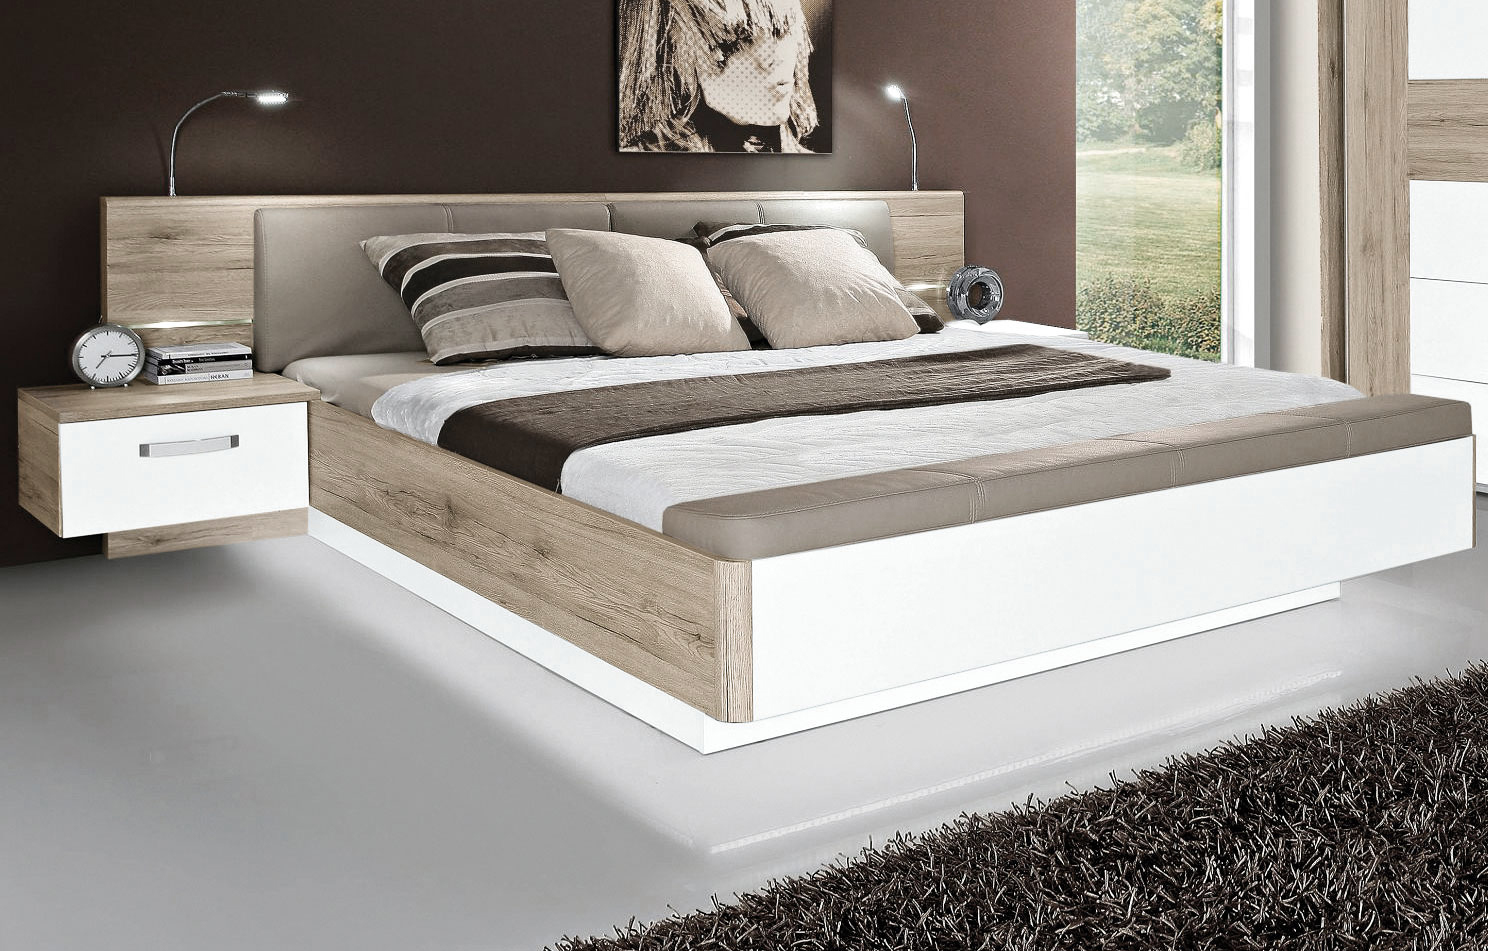 forte rondino schlafzimmer mit schweber m bel letz ihr online shop. Black Bedroom Furniture Sets. Home Design Ideas